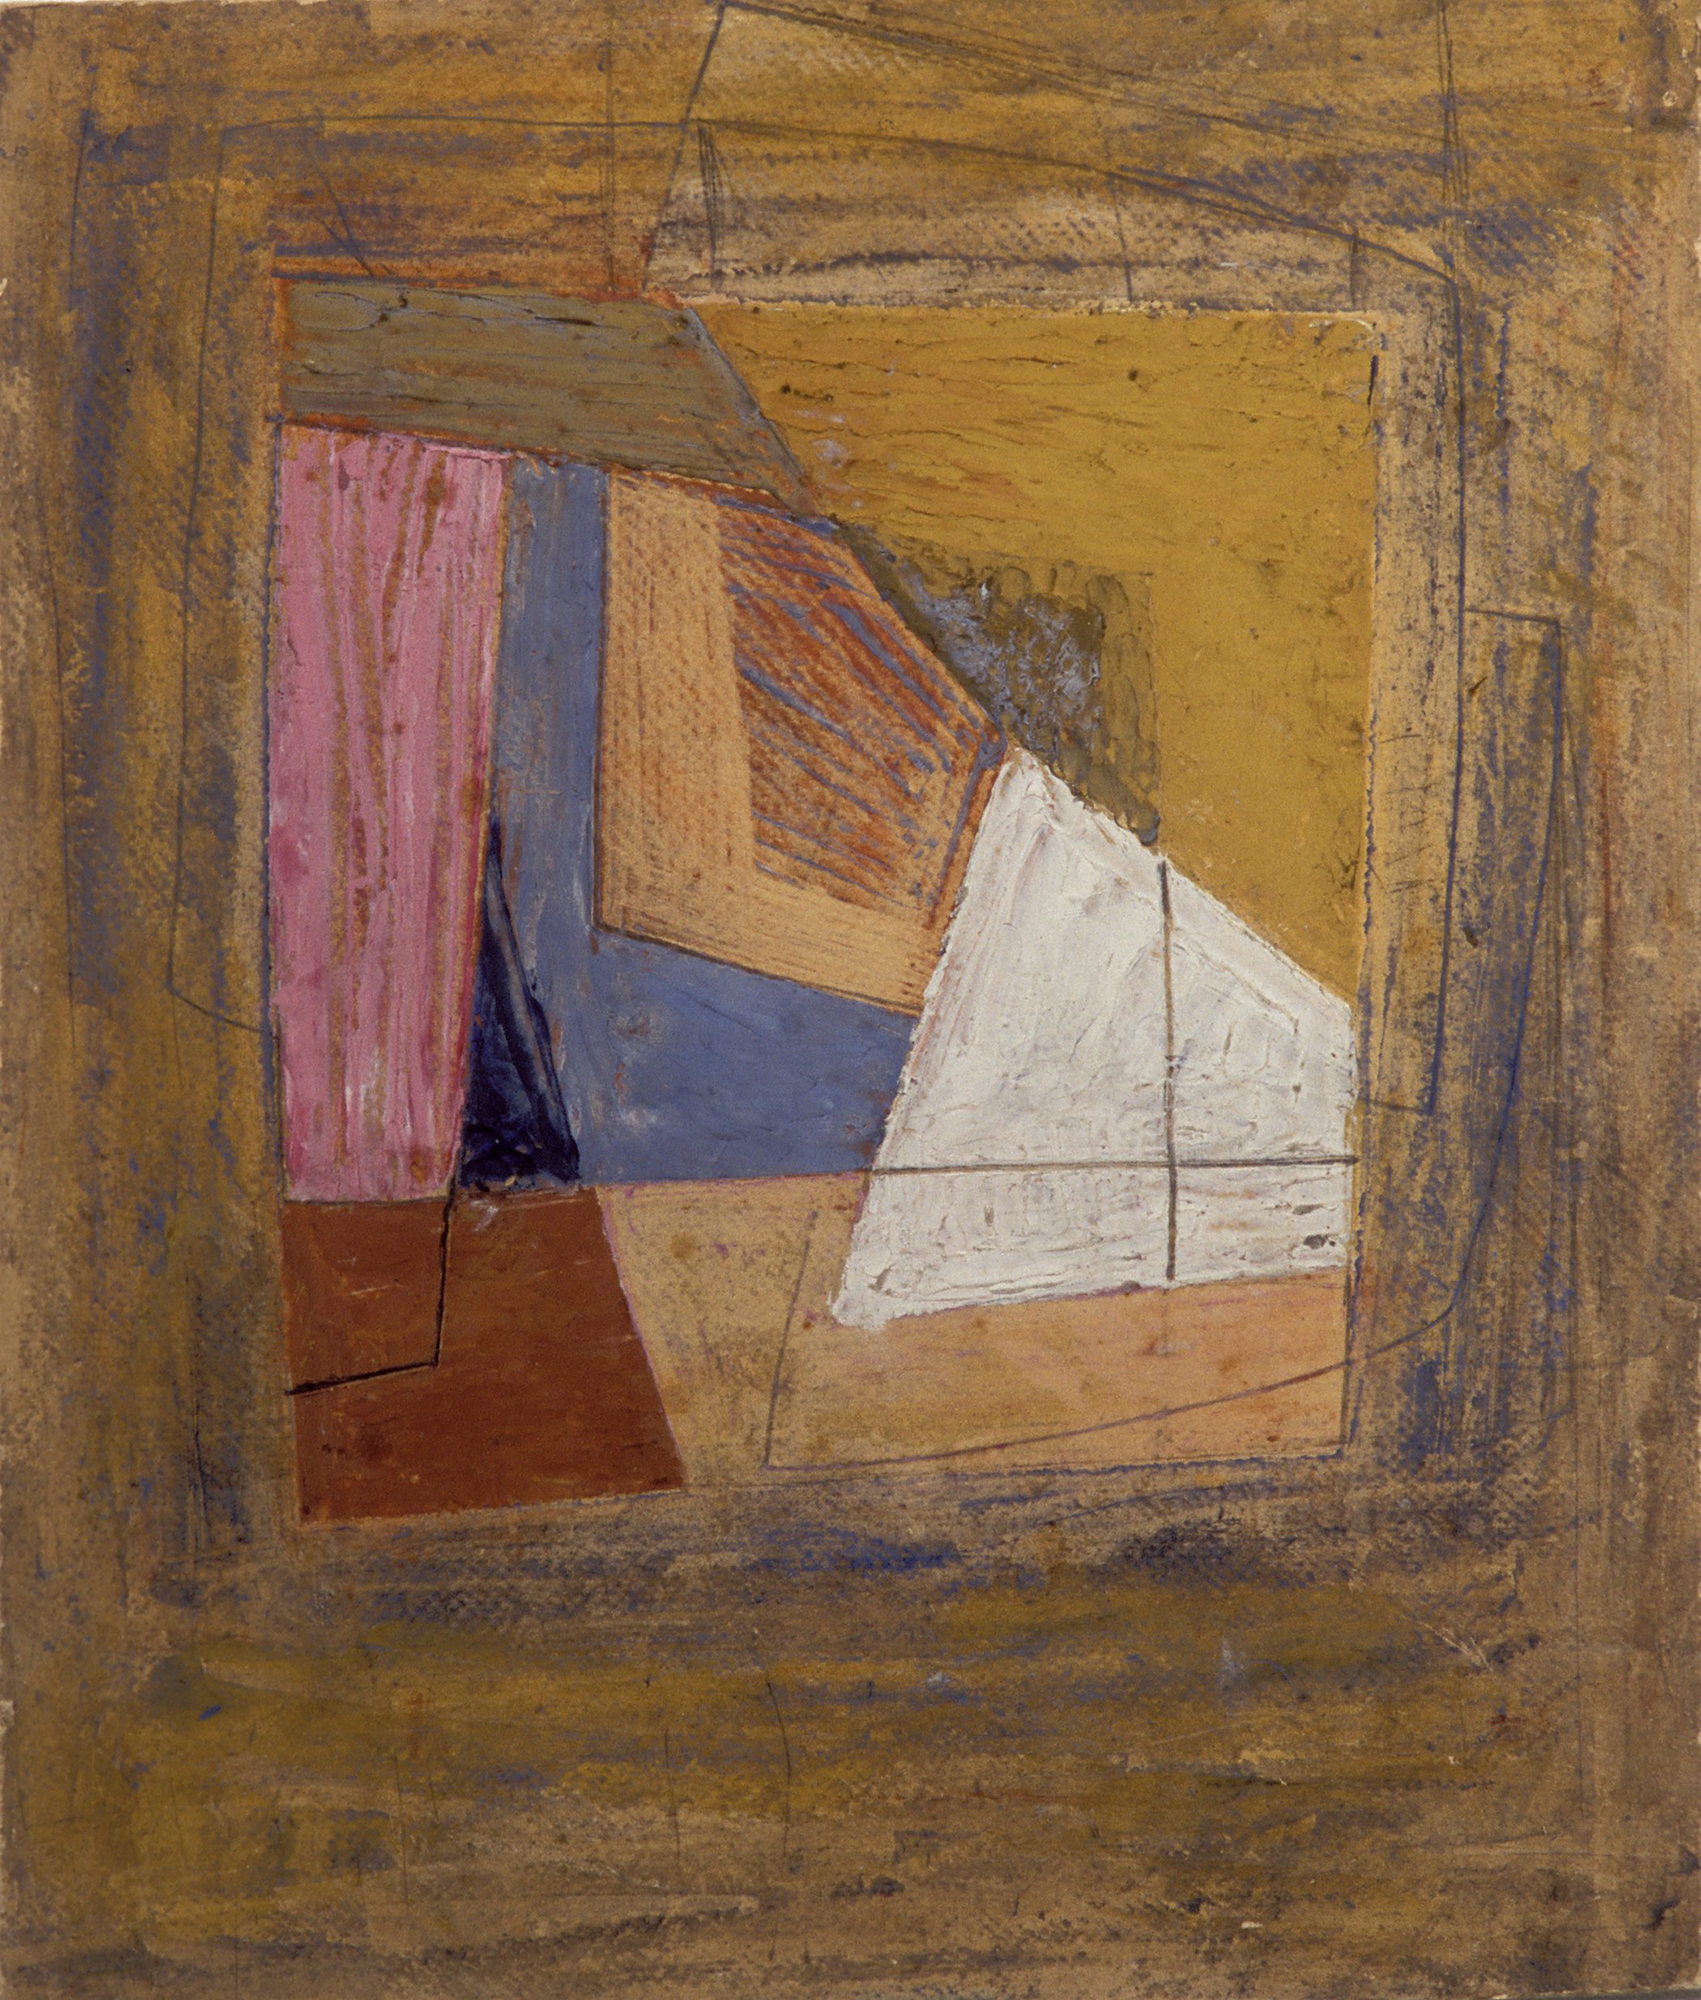 Sidney Nolan  Untitled (Cubist Abstract)  c.1939 oil and pencil on cardboard 31.5 x 26 cm Heide Museum of Modern Art, Melbourne Gift of the family of Martin Smith 1999 © Sidney Nolan Trust